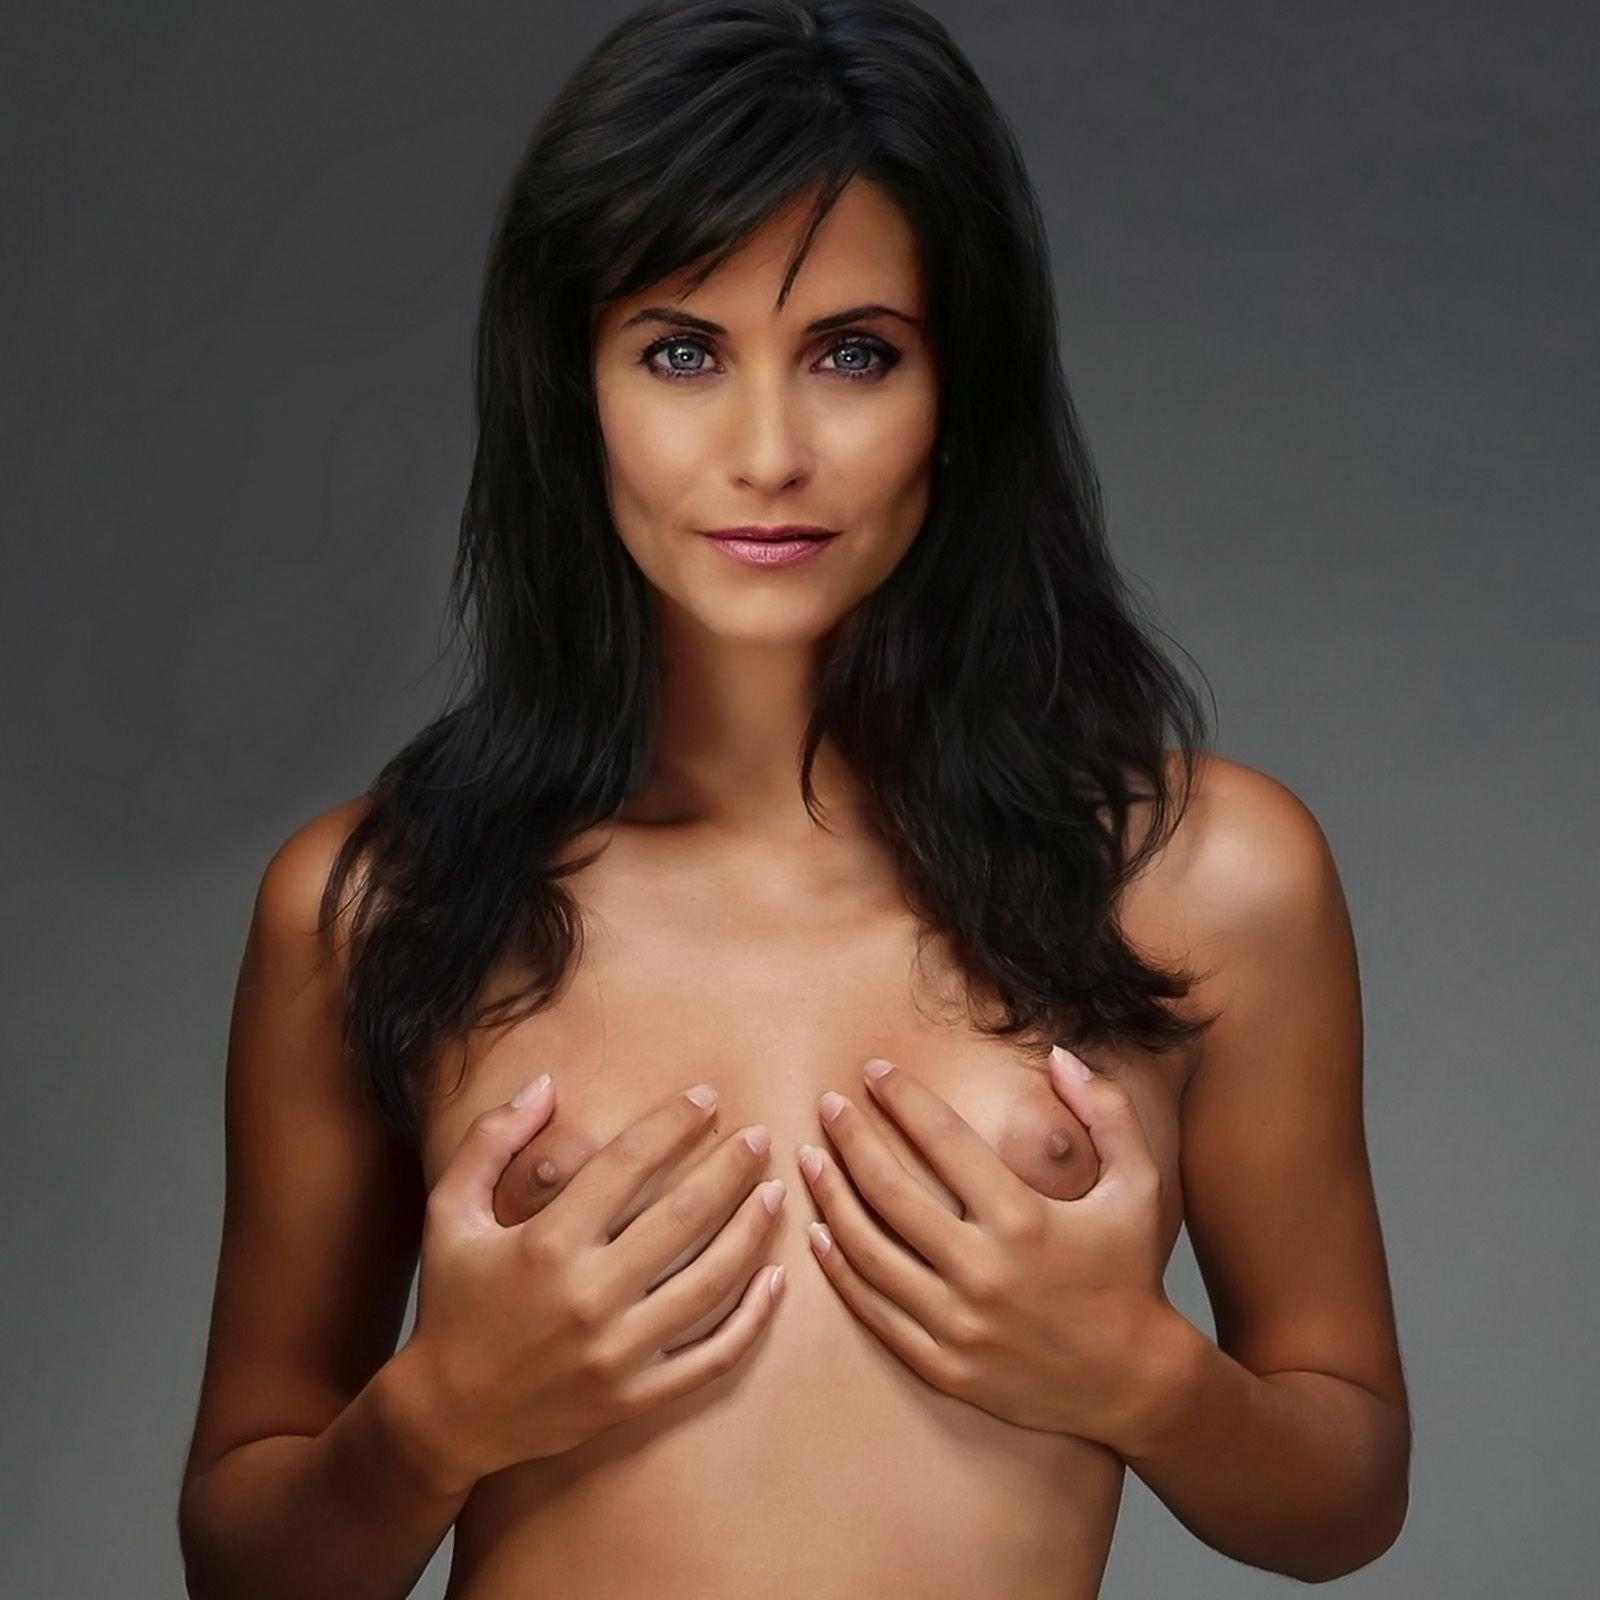 Pin On Courtney Cox